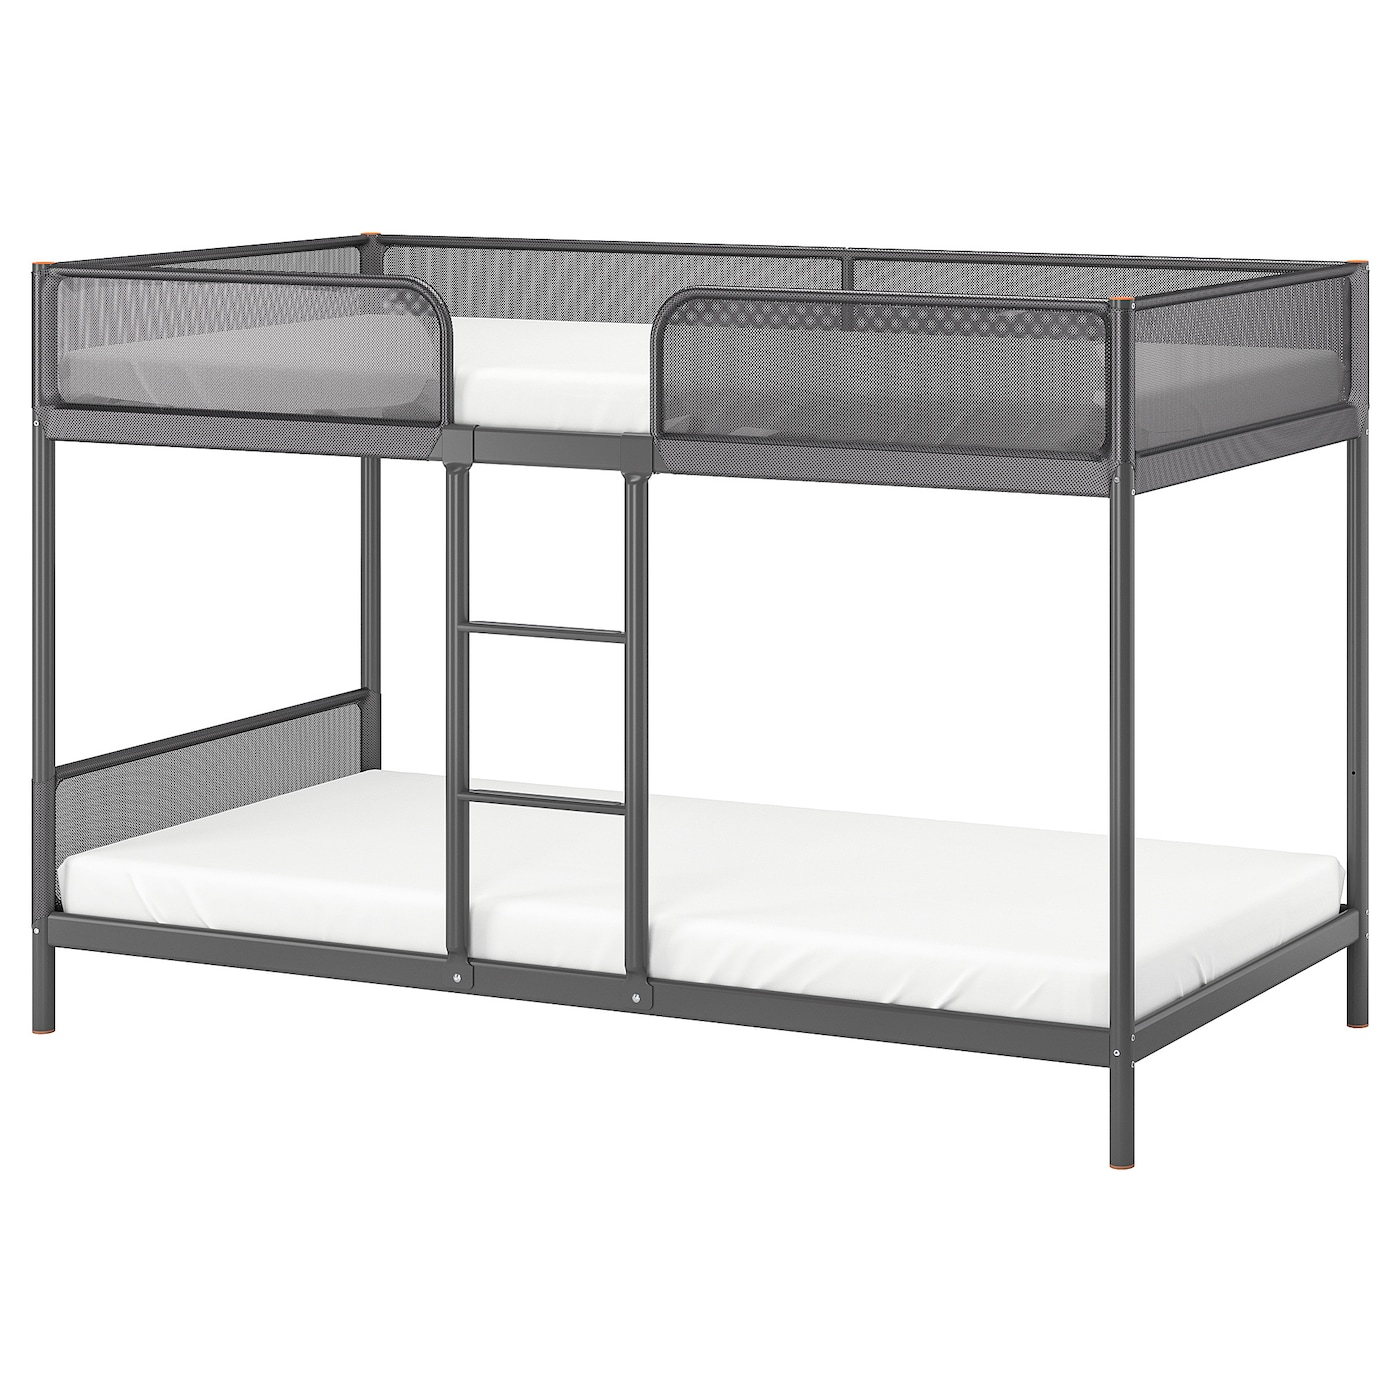 tuffing bunk bed frame dark grey 90 x 200 cm ikea. Black Bedroom Furniture Sets. Home Design Ideas